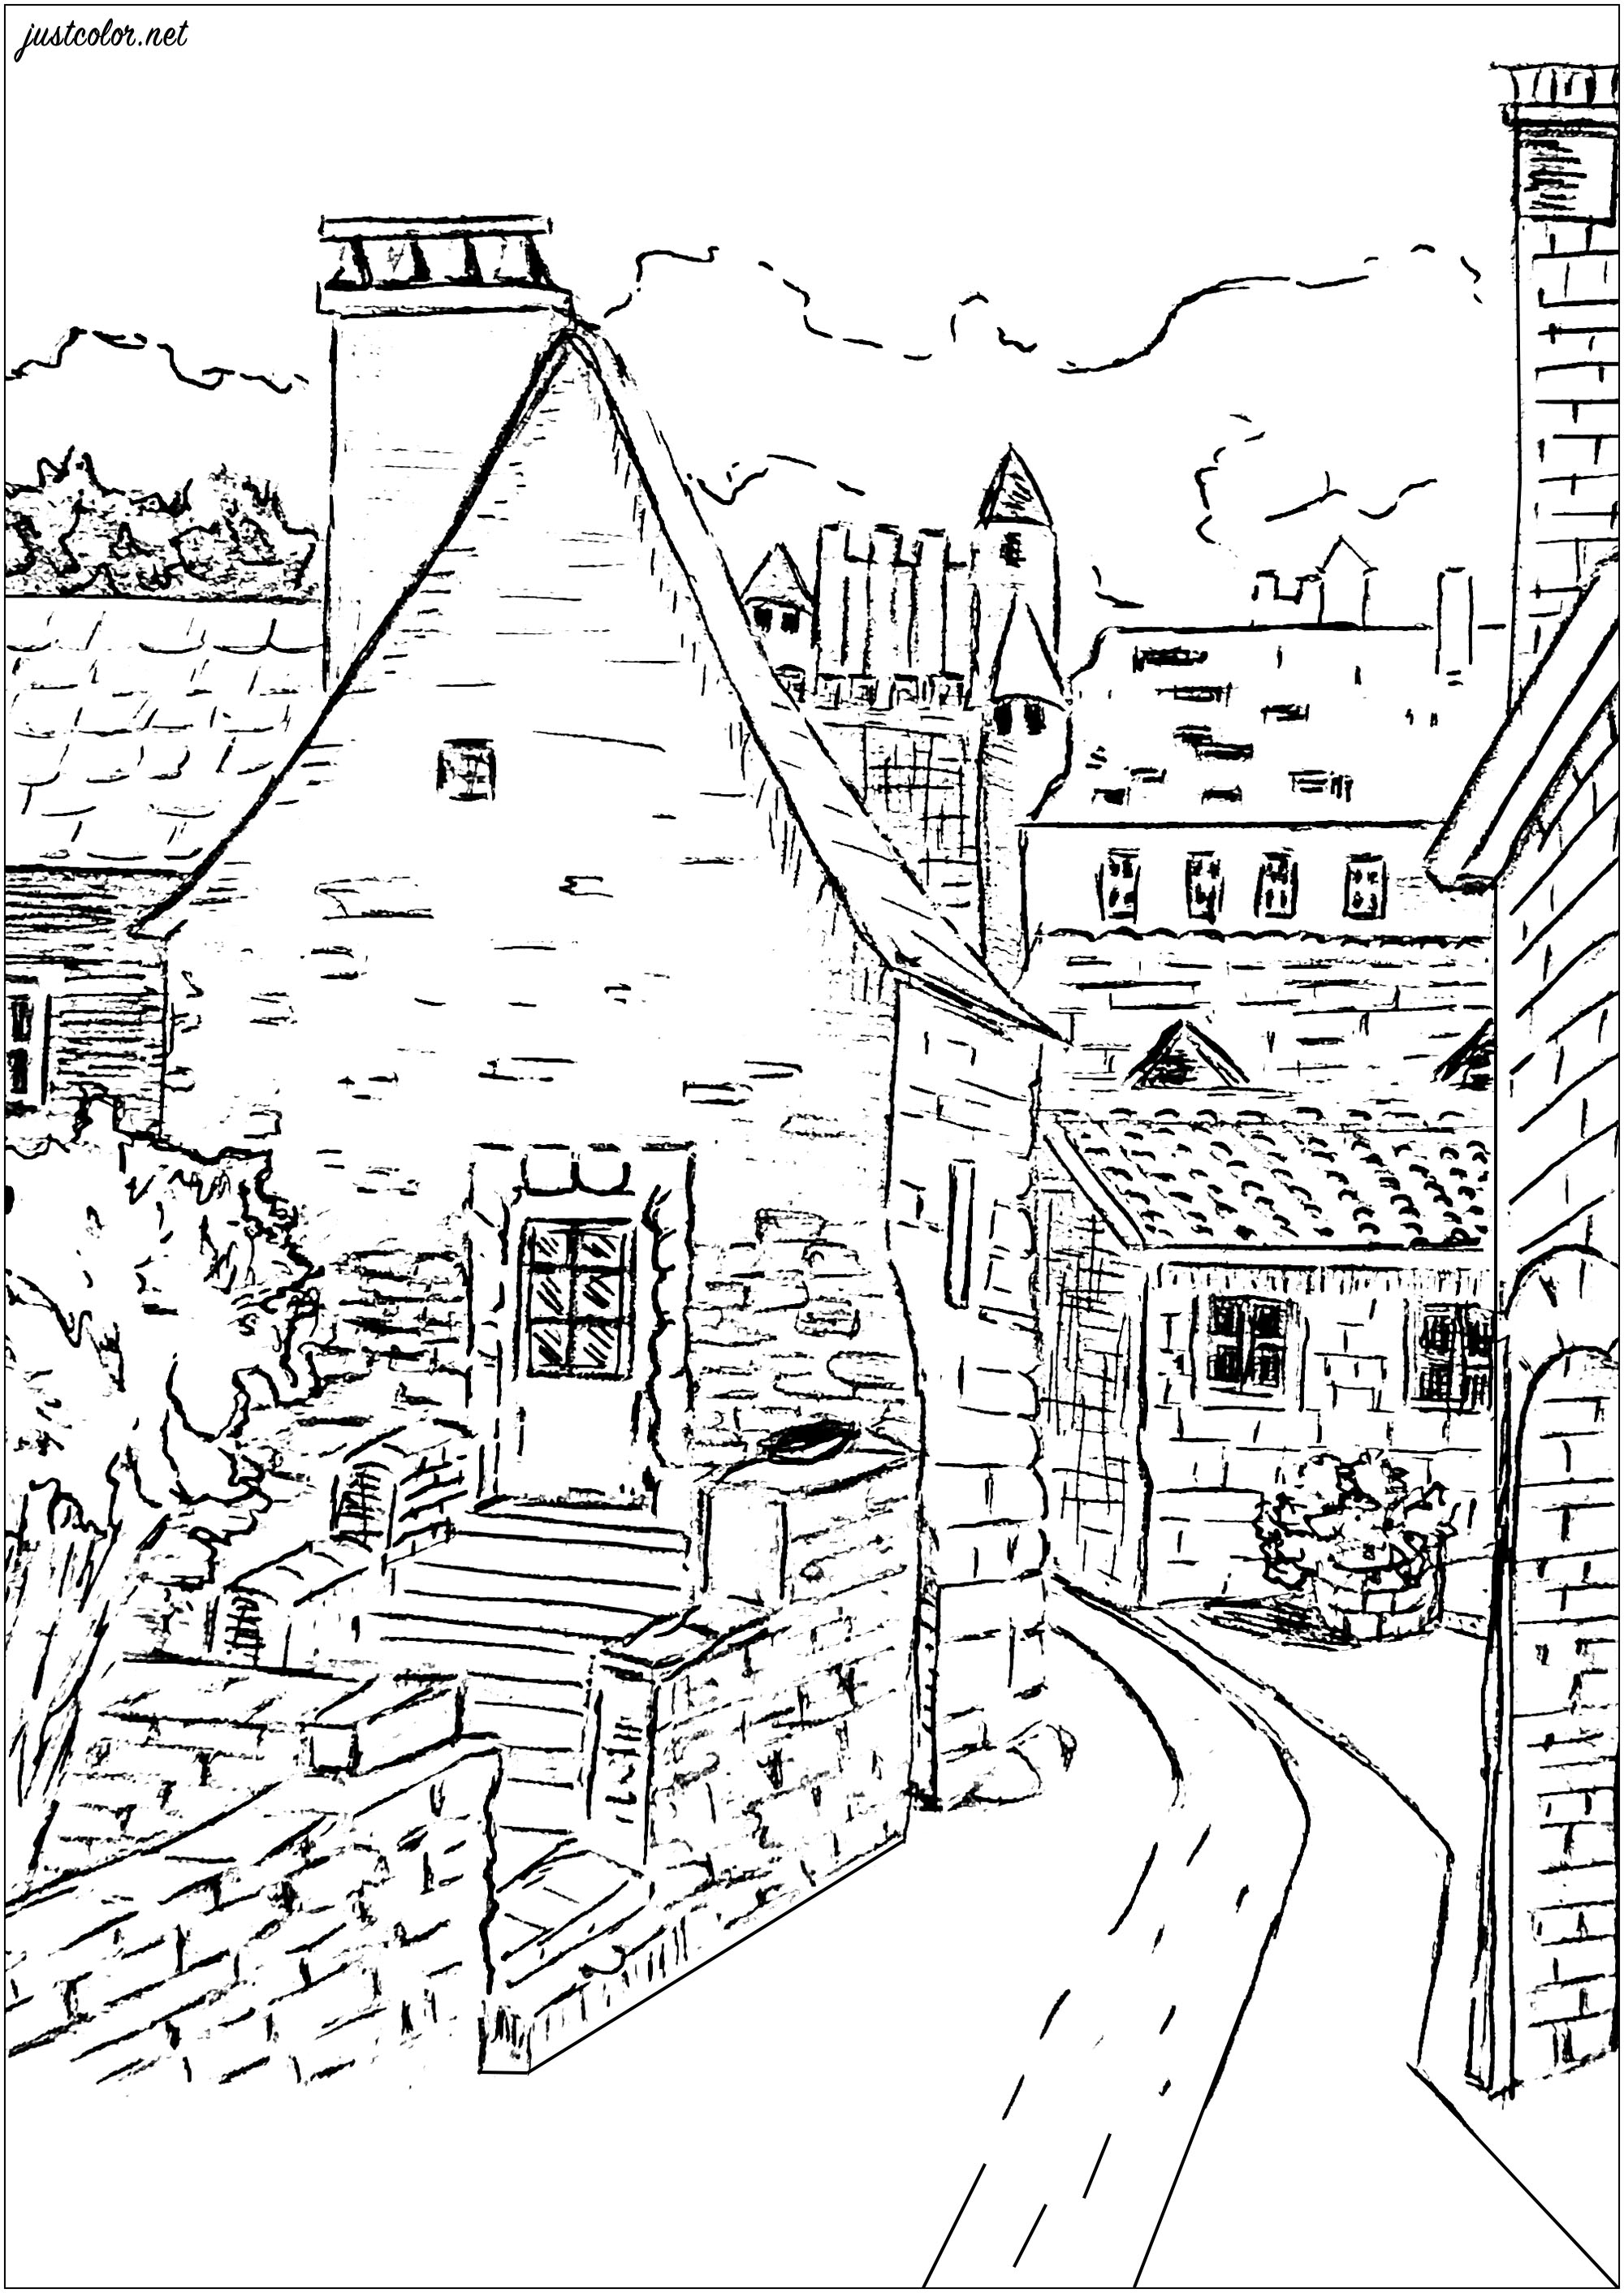 Visit (with your pencils and markers) this pretty little hamlet of Dordogne, its narrow streets and pretty houses ...